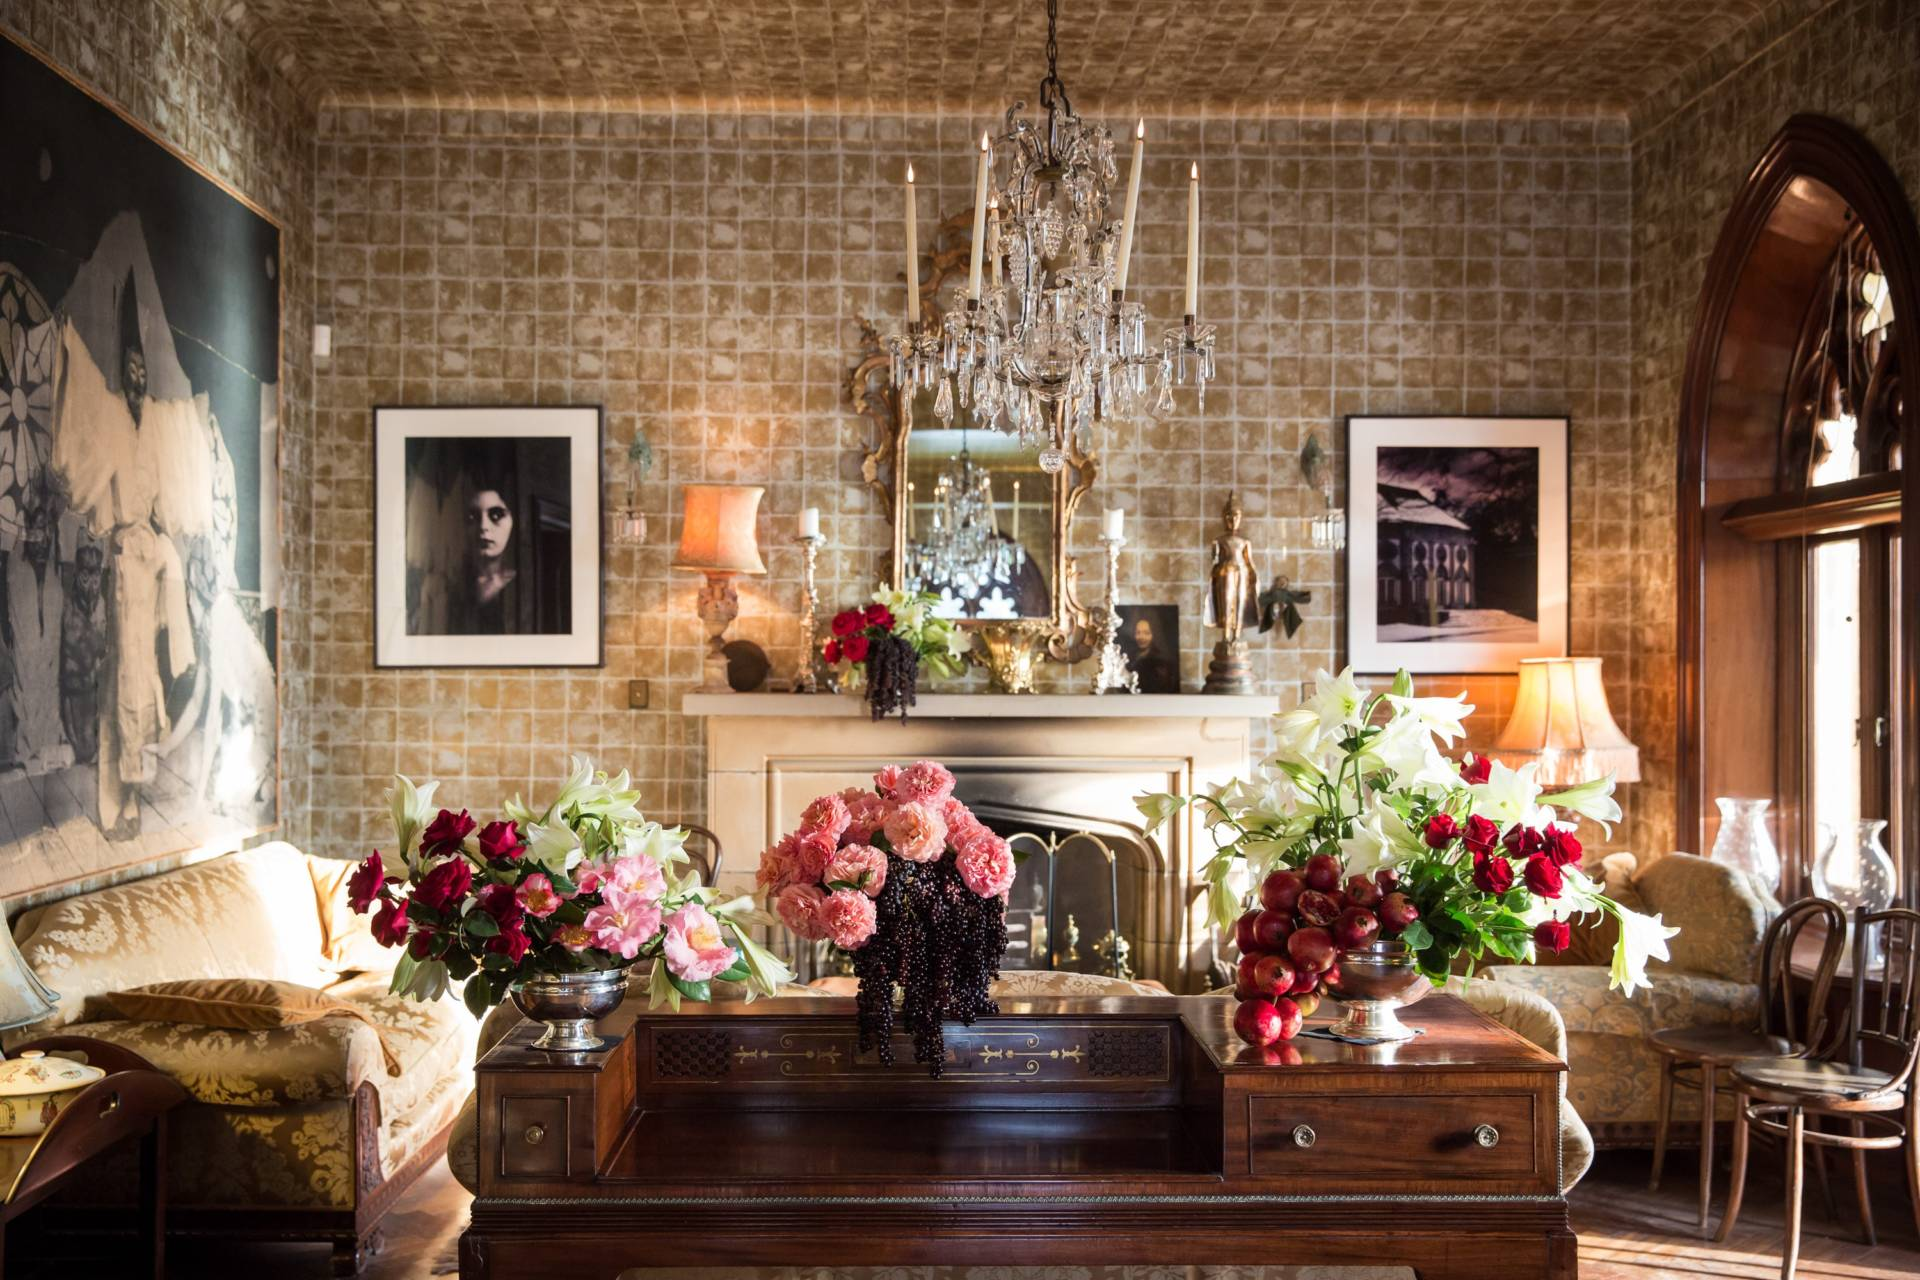 How To Add A Touch Of Glamour To Your Home